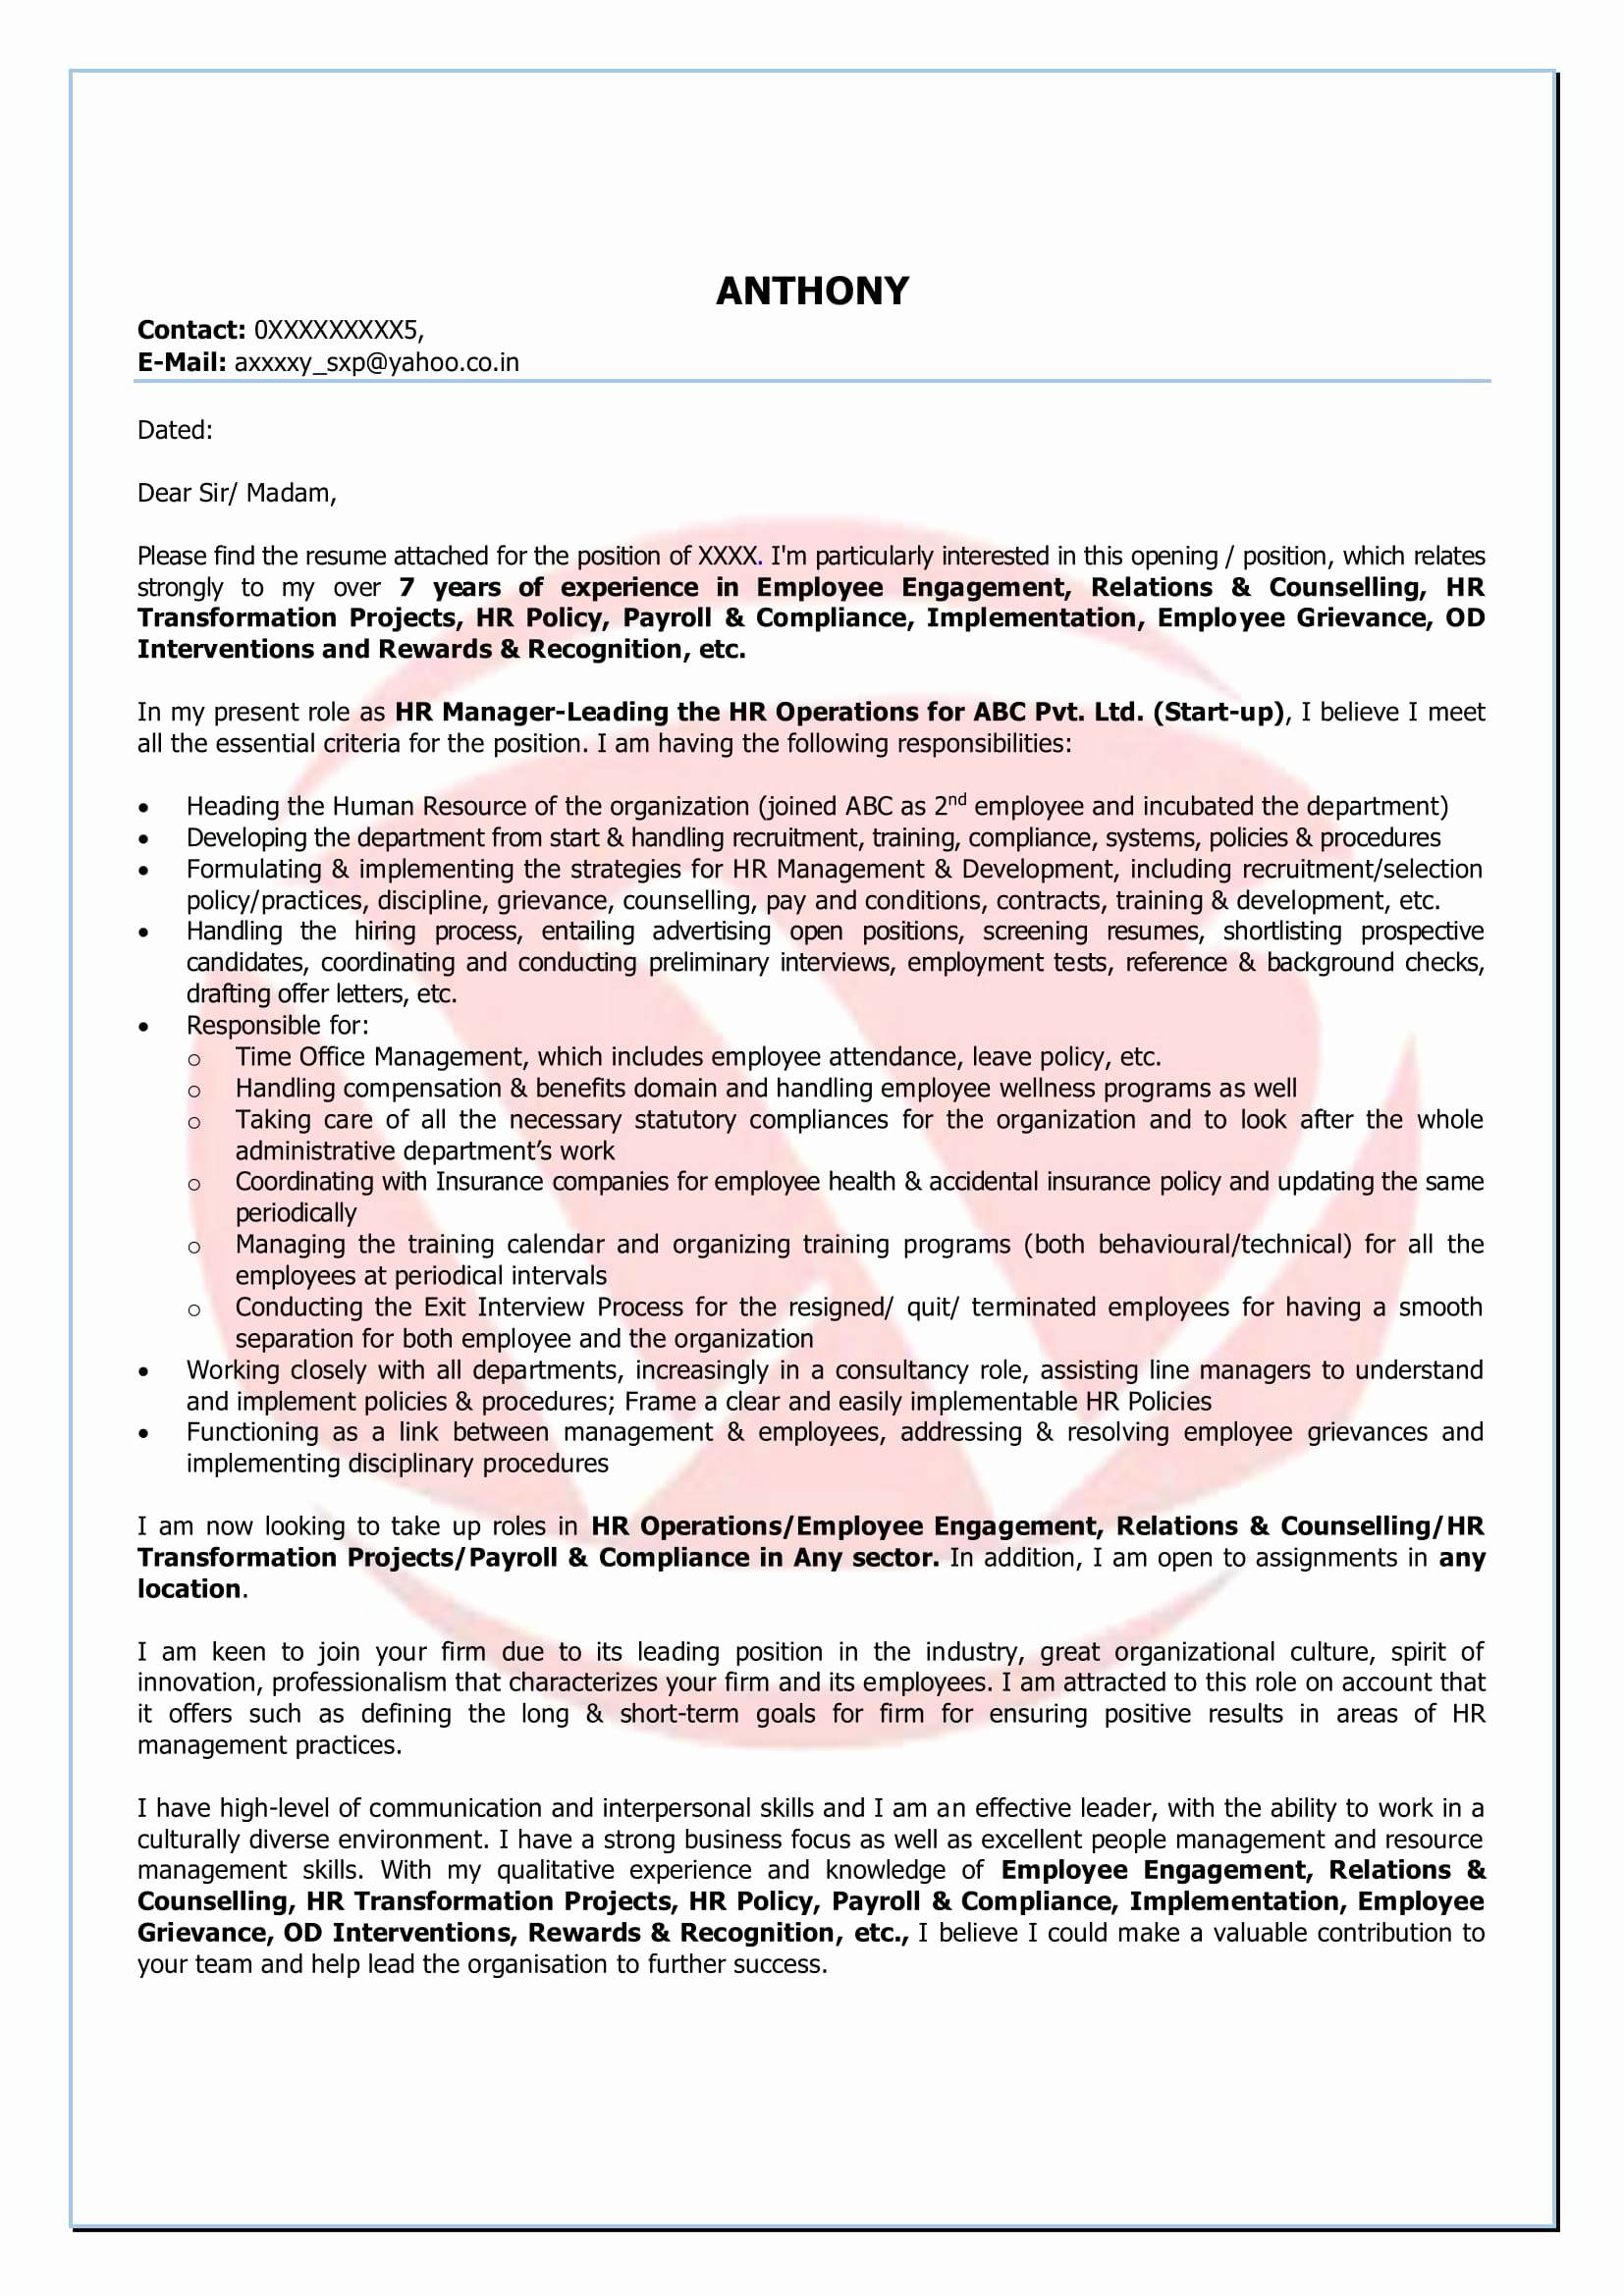 Land Offer Letter Template - Resume Templates Maryforauditor